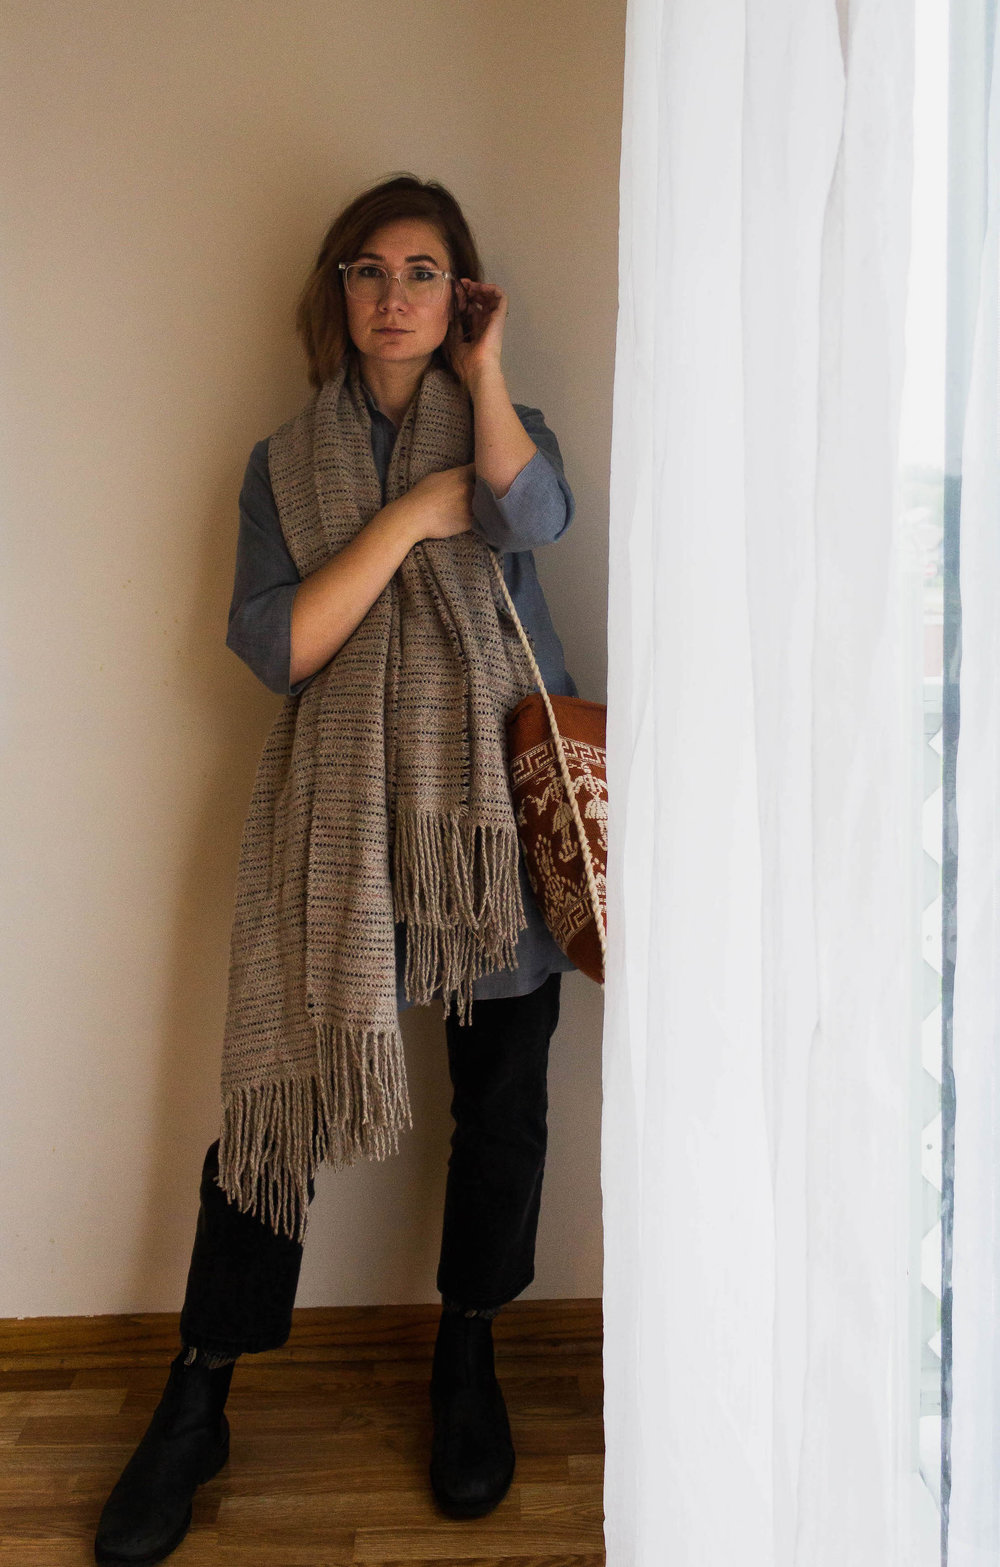 Cozy fall outfit - A Week Of Easy & Sophisticated Outfits With Karin Rambo From Truncation on The Good Trade